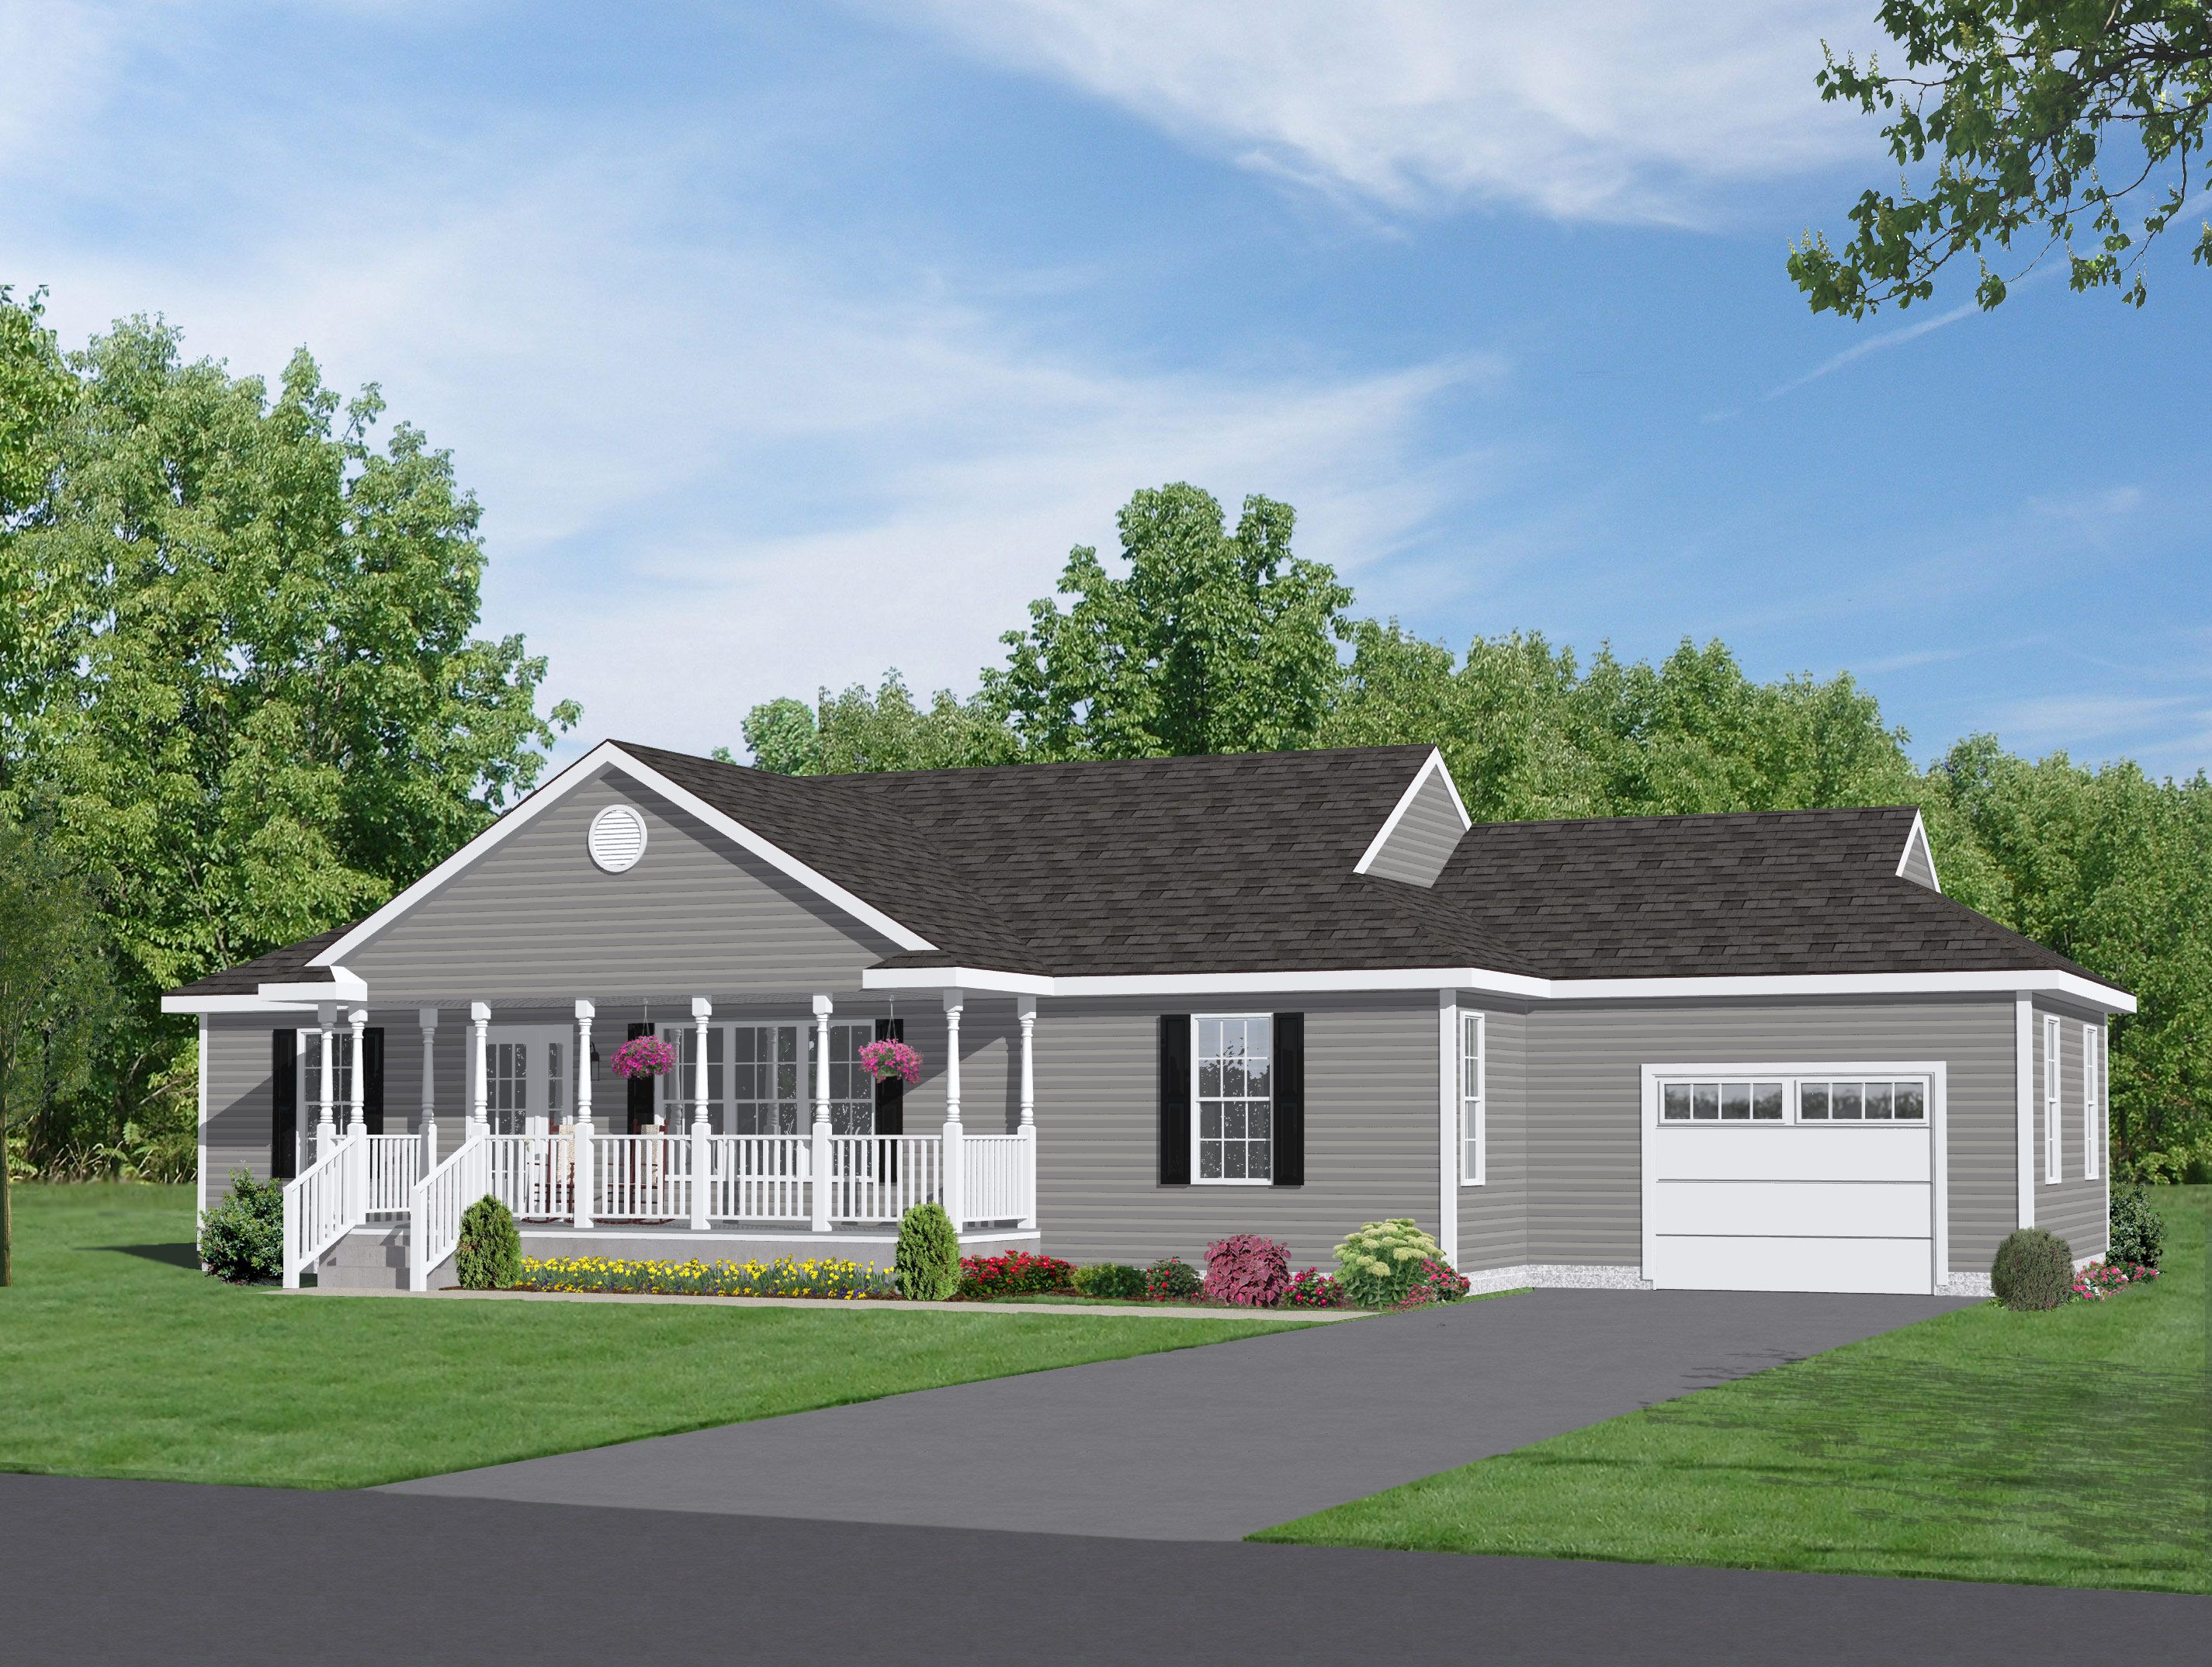 RANCHER PLANS RANCHER PLANS two story house plansranch style home